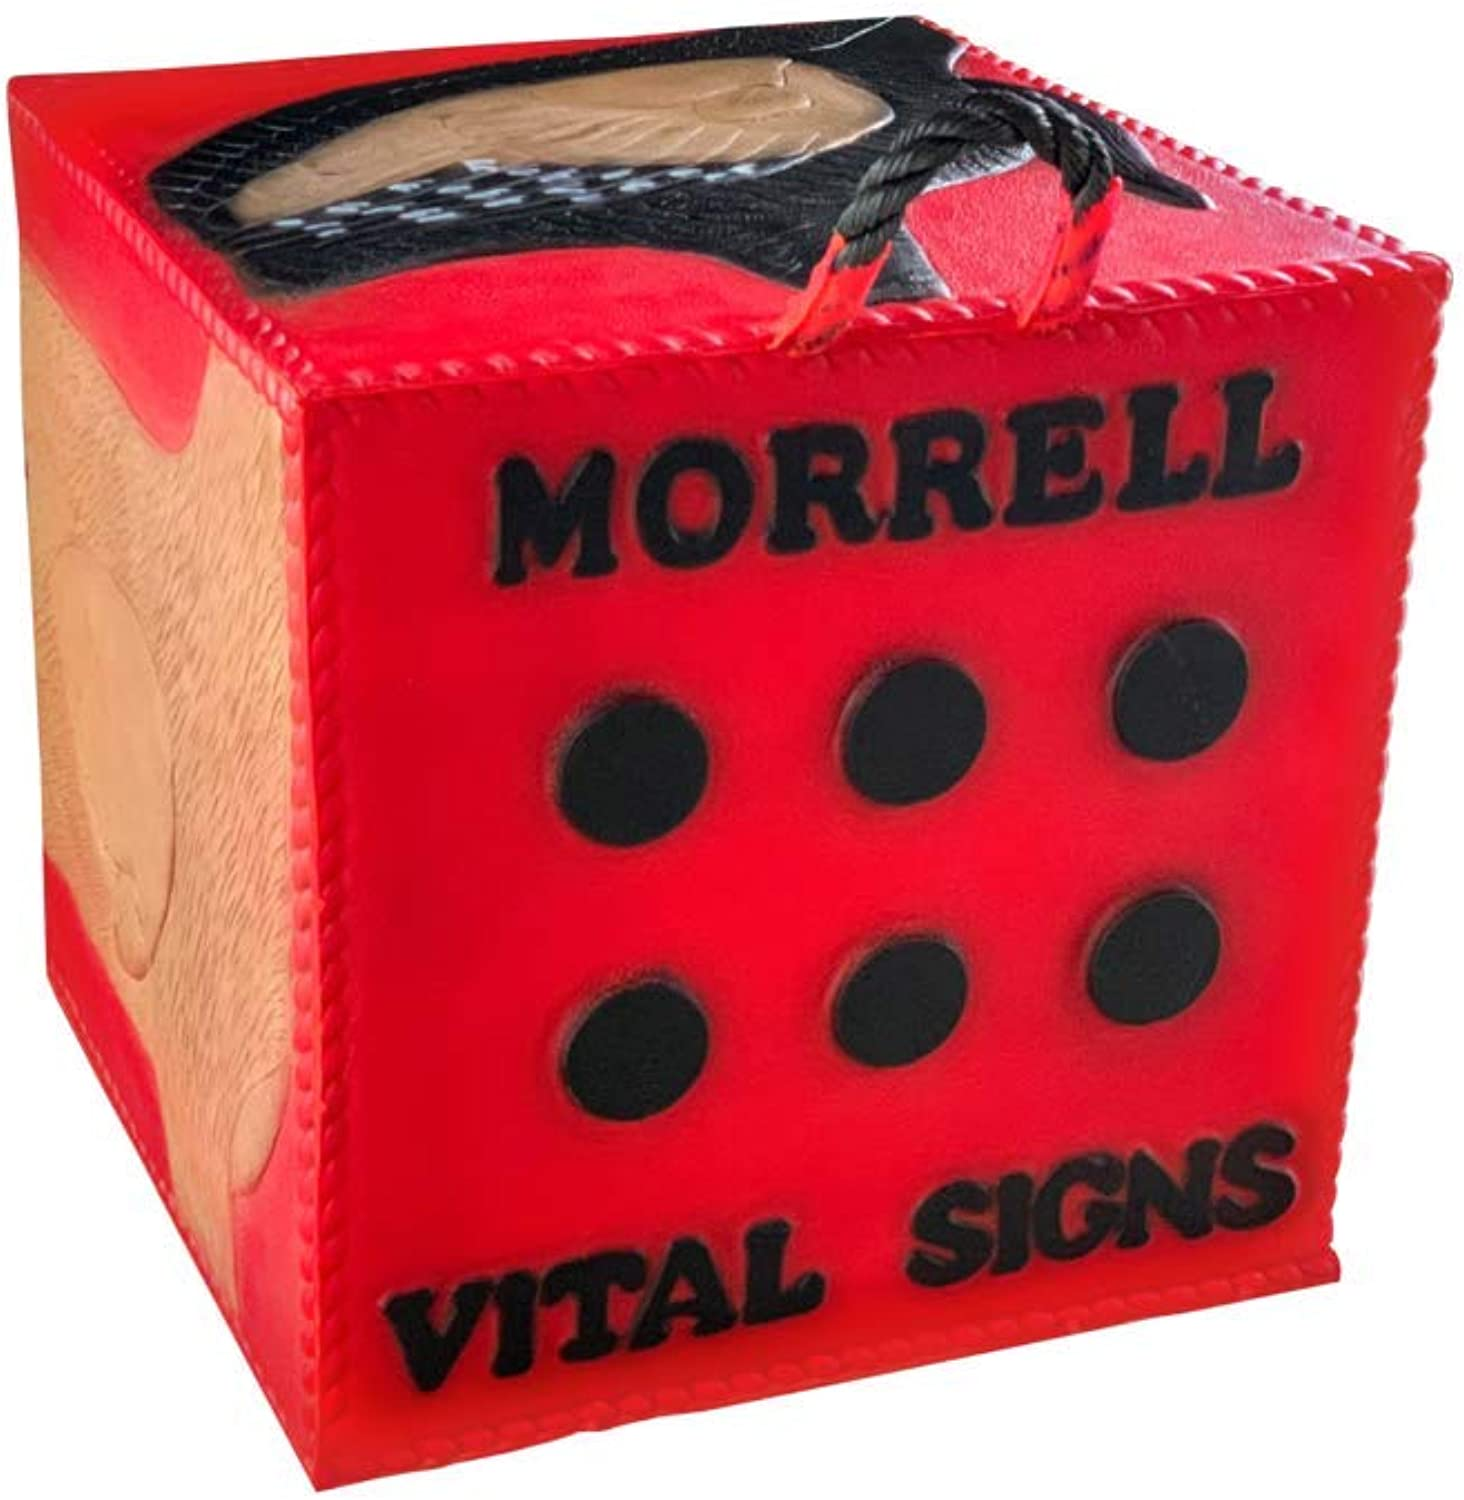 Morrell New Vital Signs Foam Archery Target for Any Bow and Any Arrow Tip